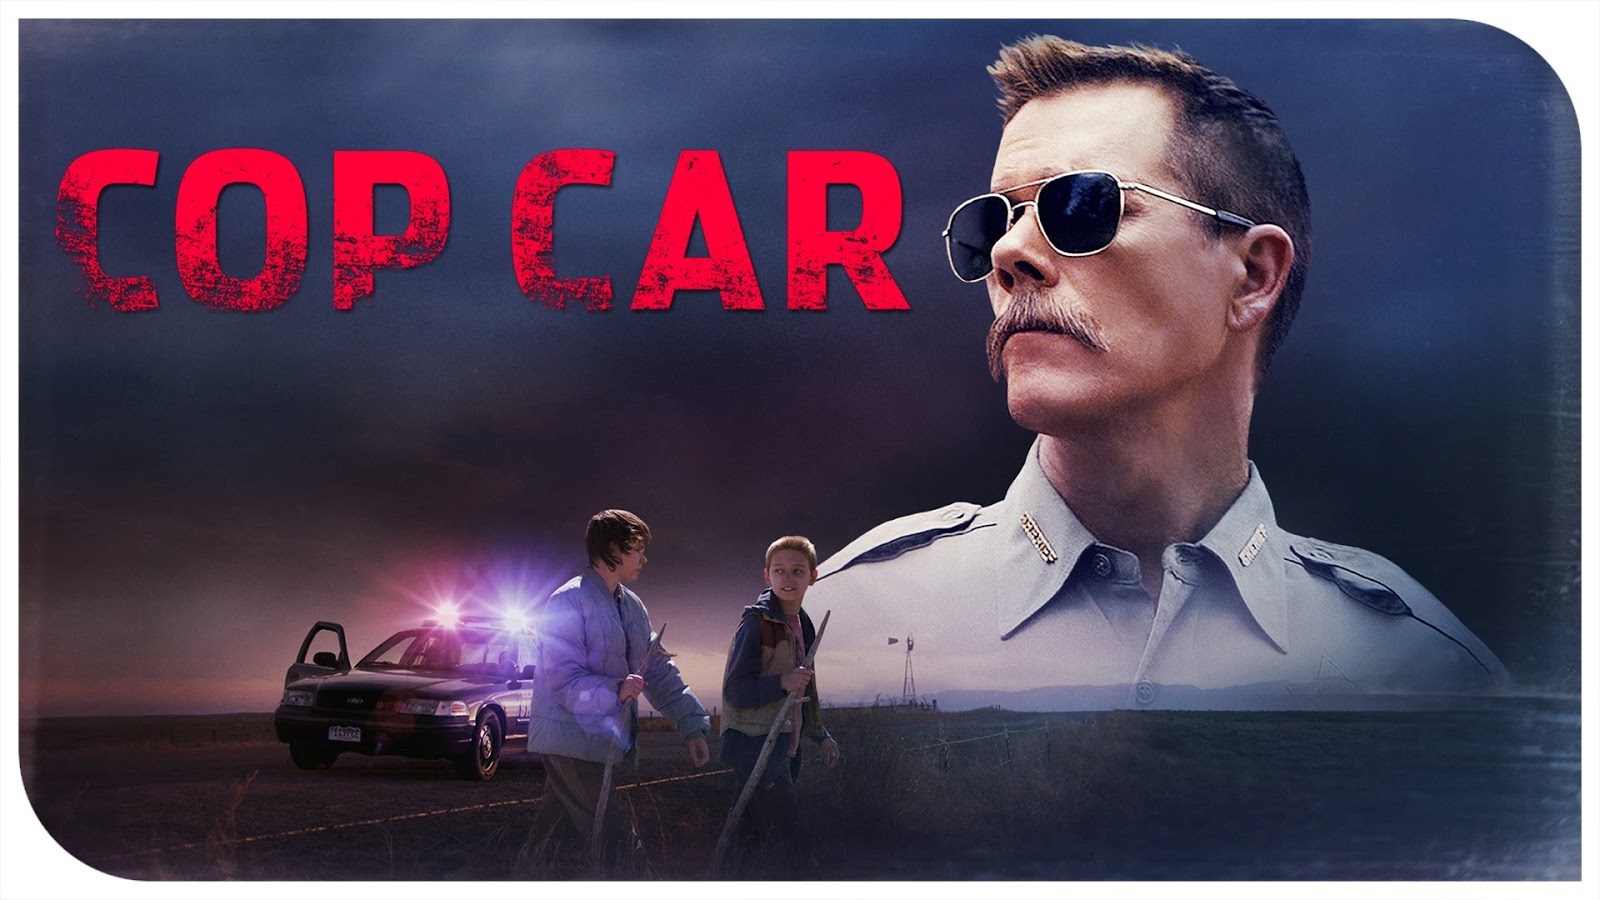 Cop Car Movie Review Podcast